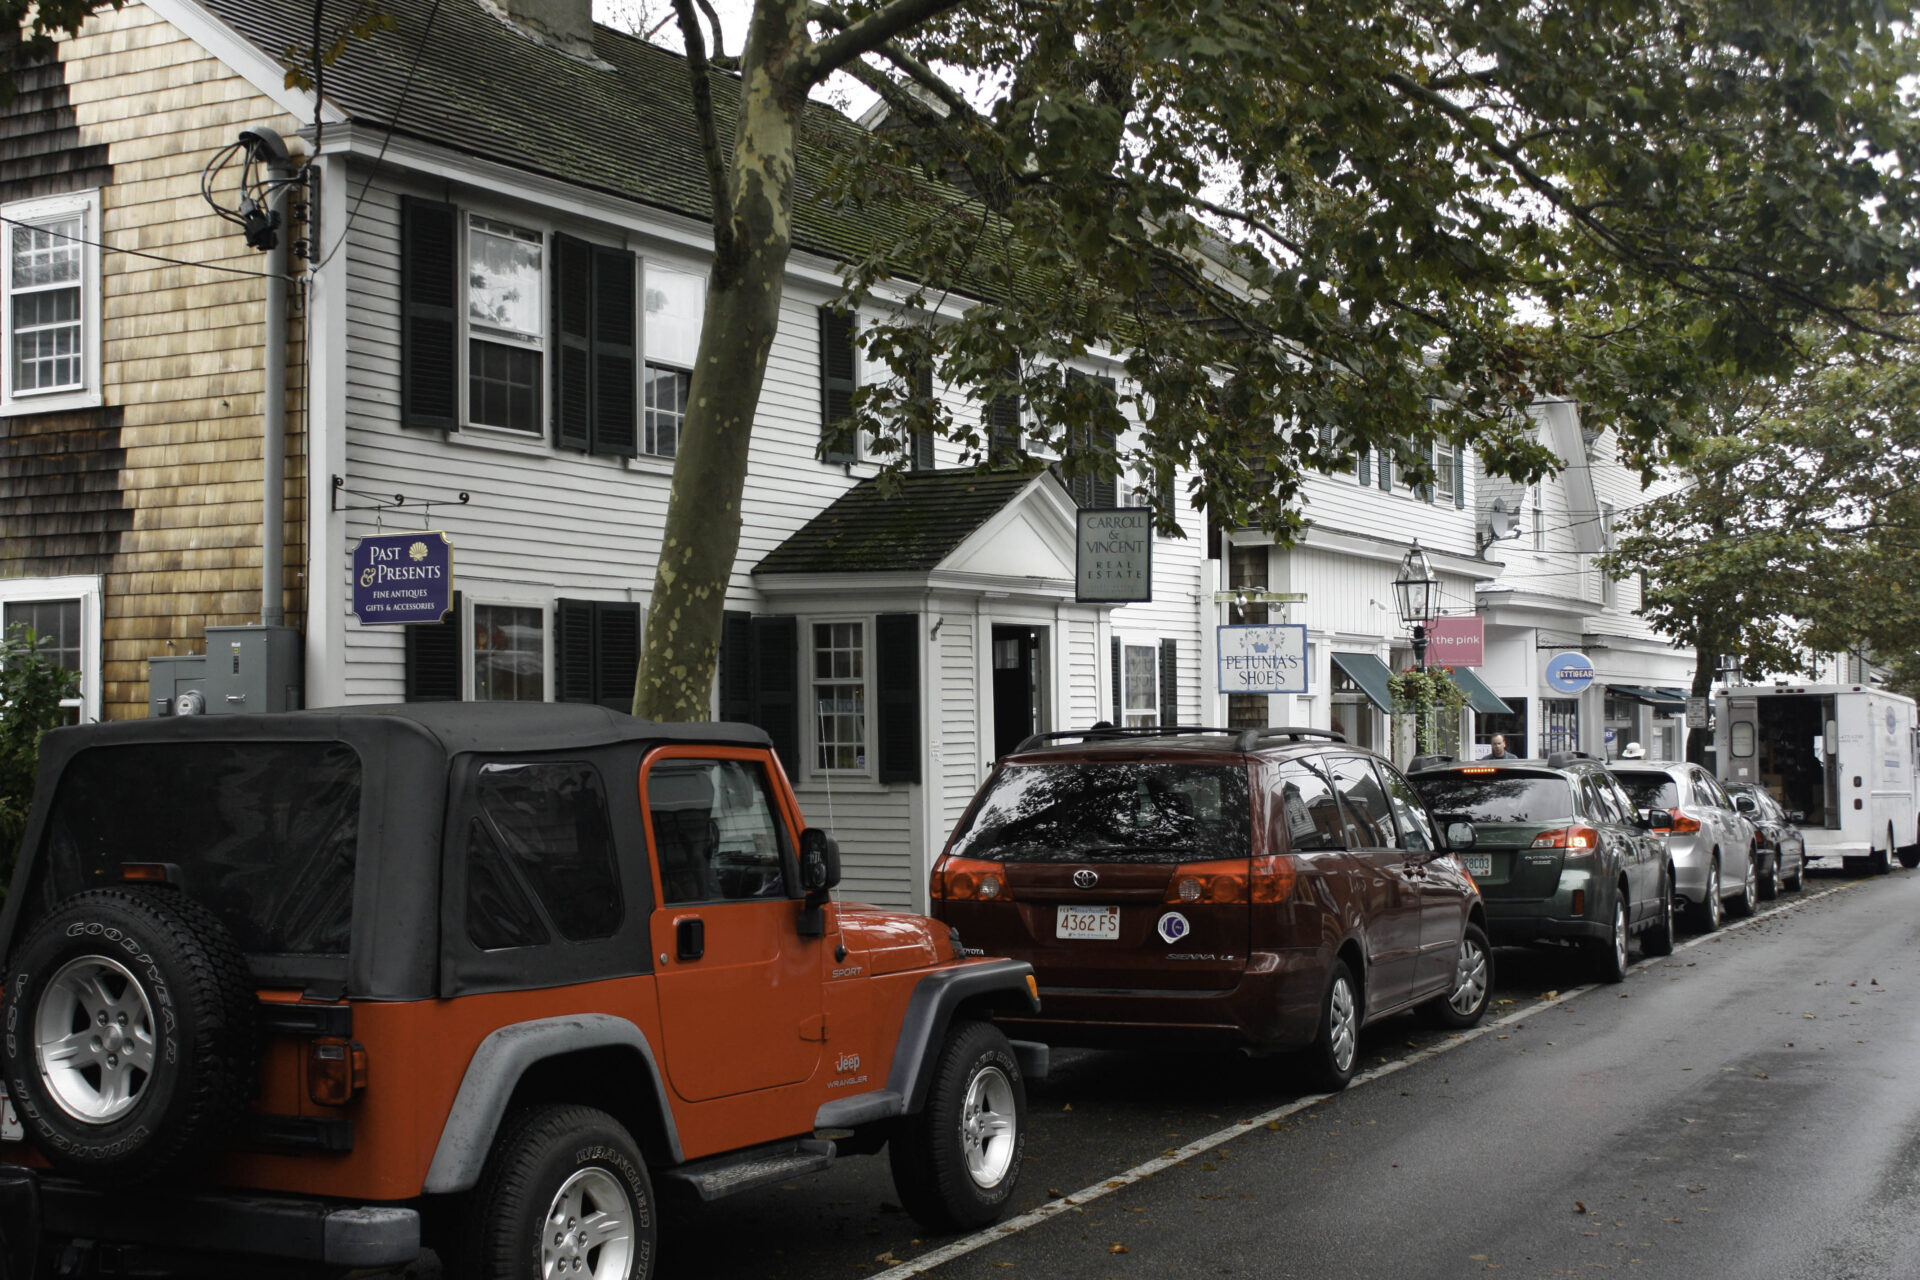 Main Street, Edgartown